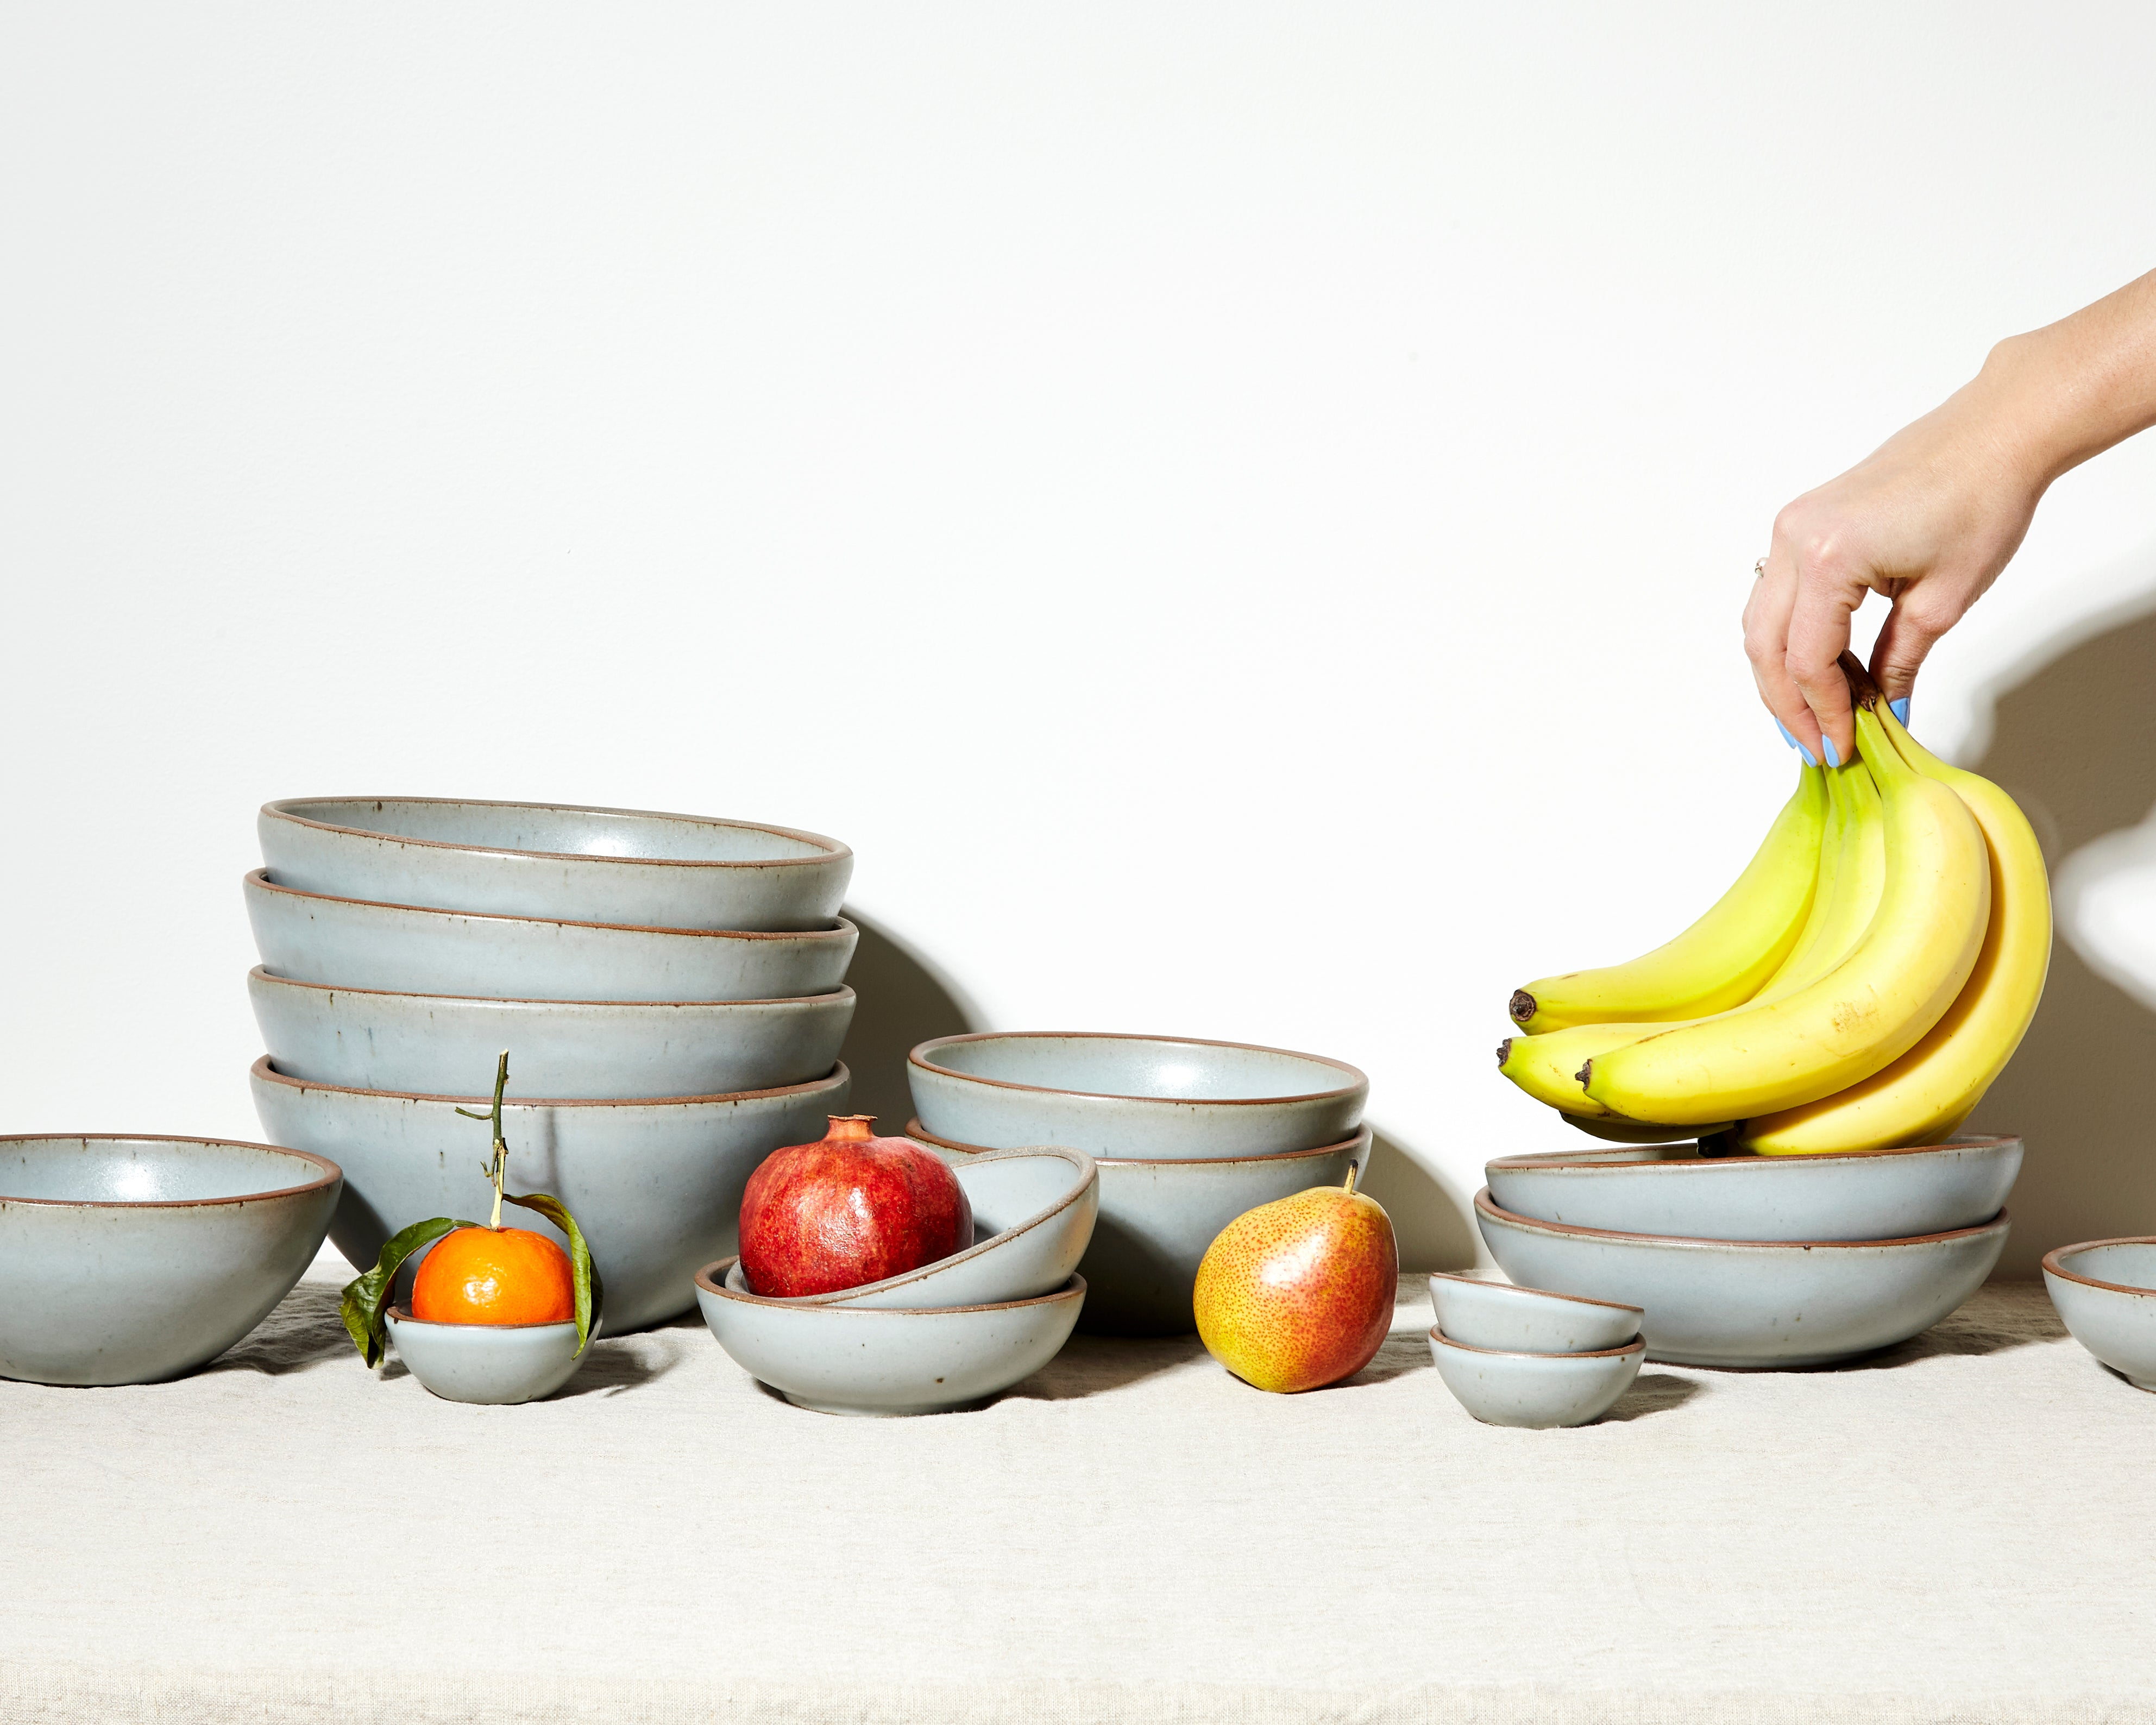 Soapstone pots with fruit